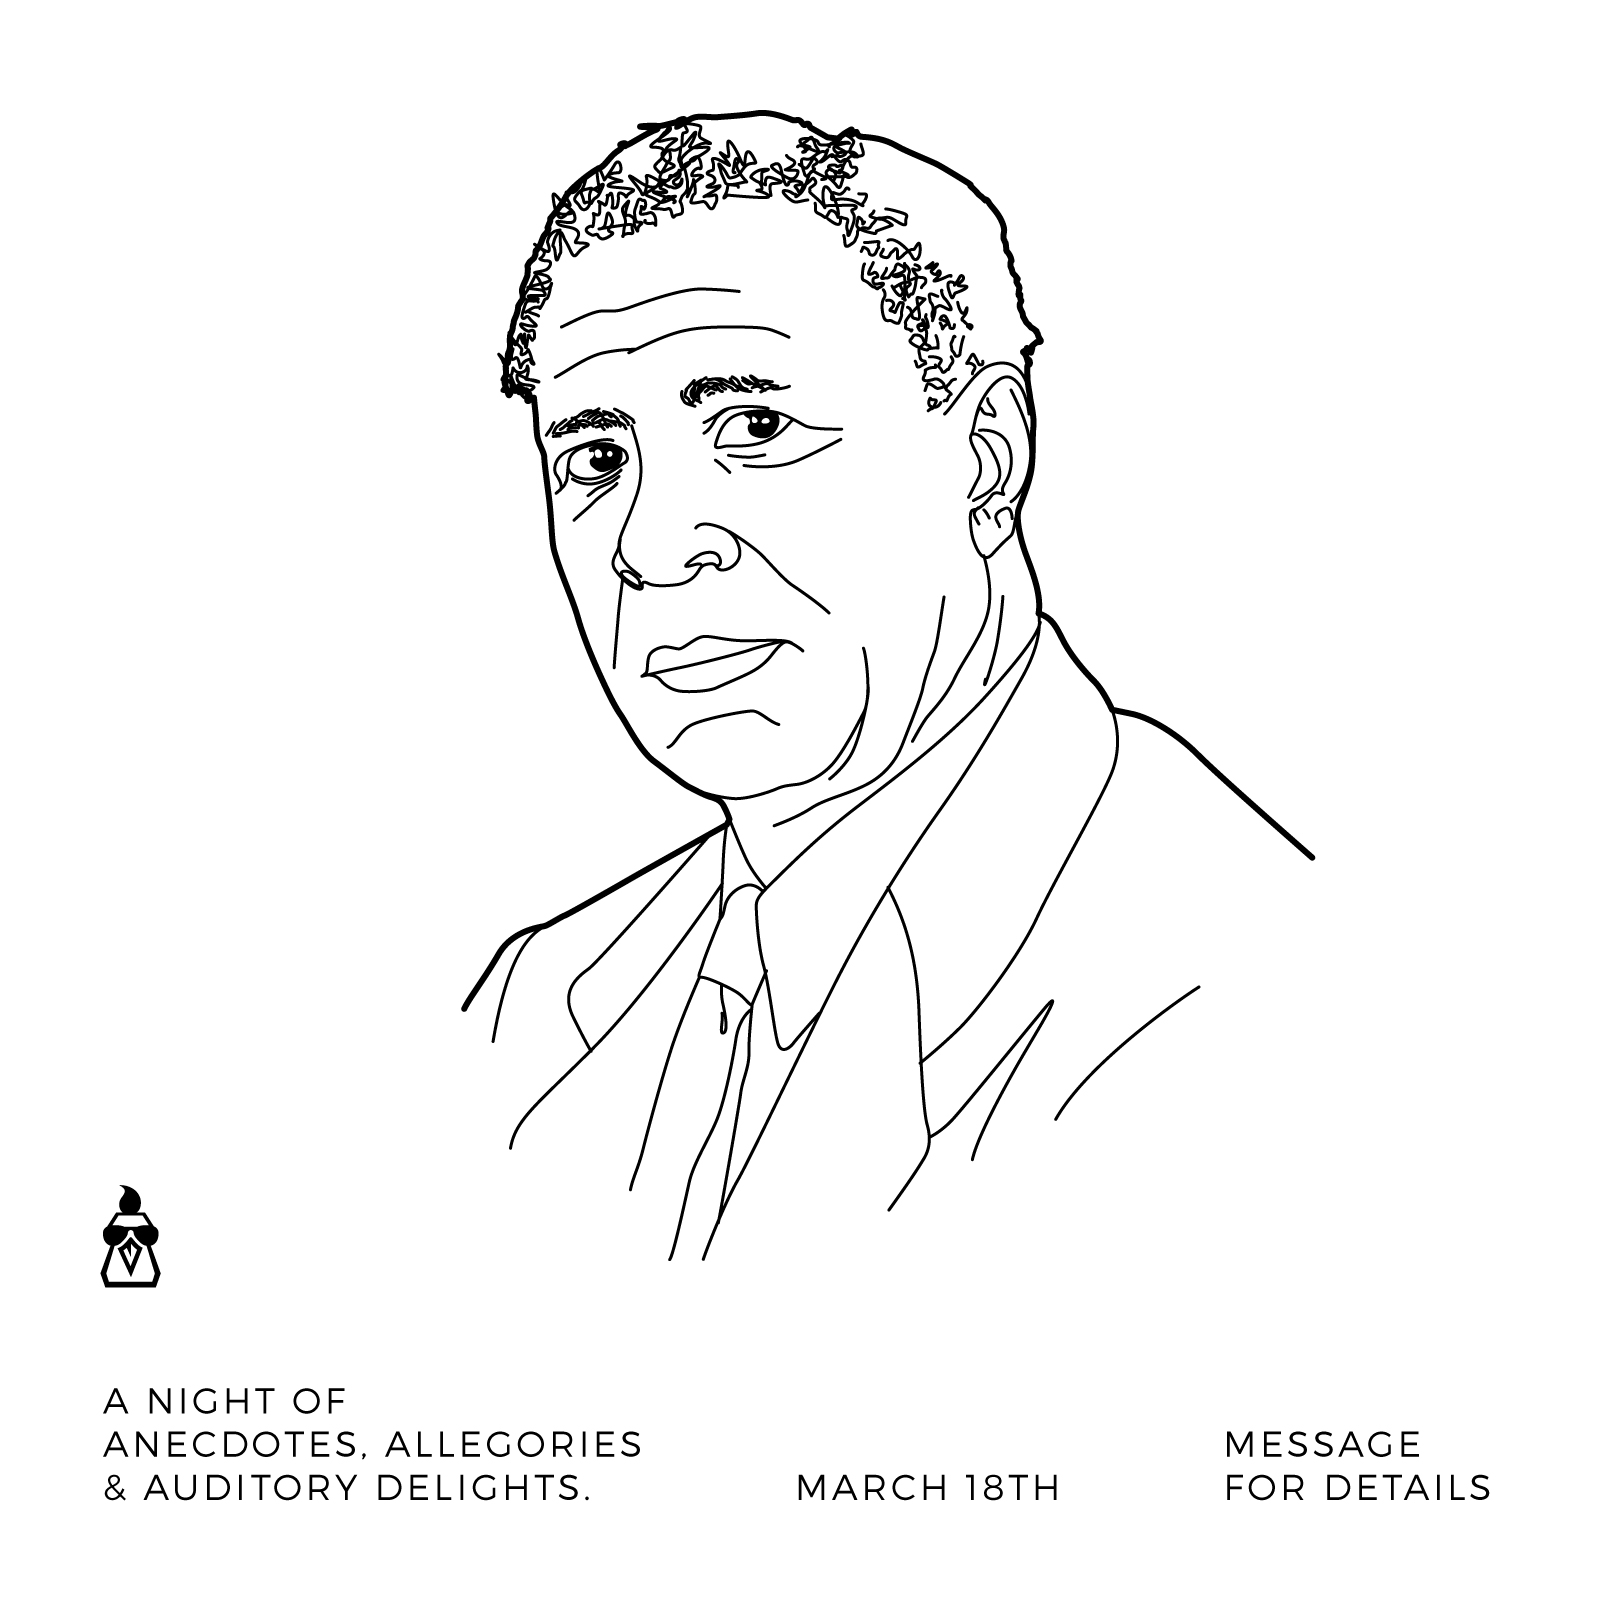 Garrett Morgan illustration